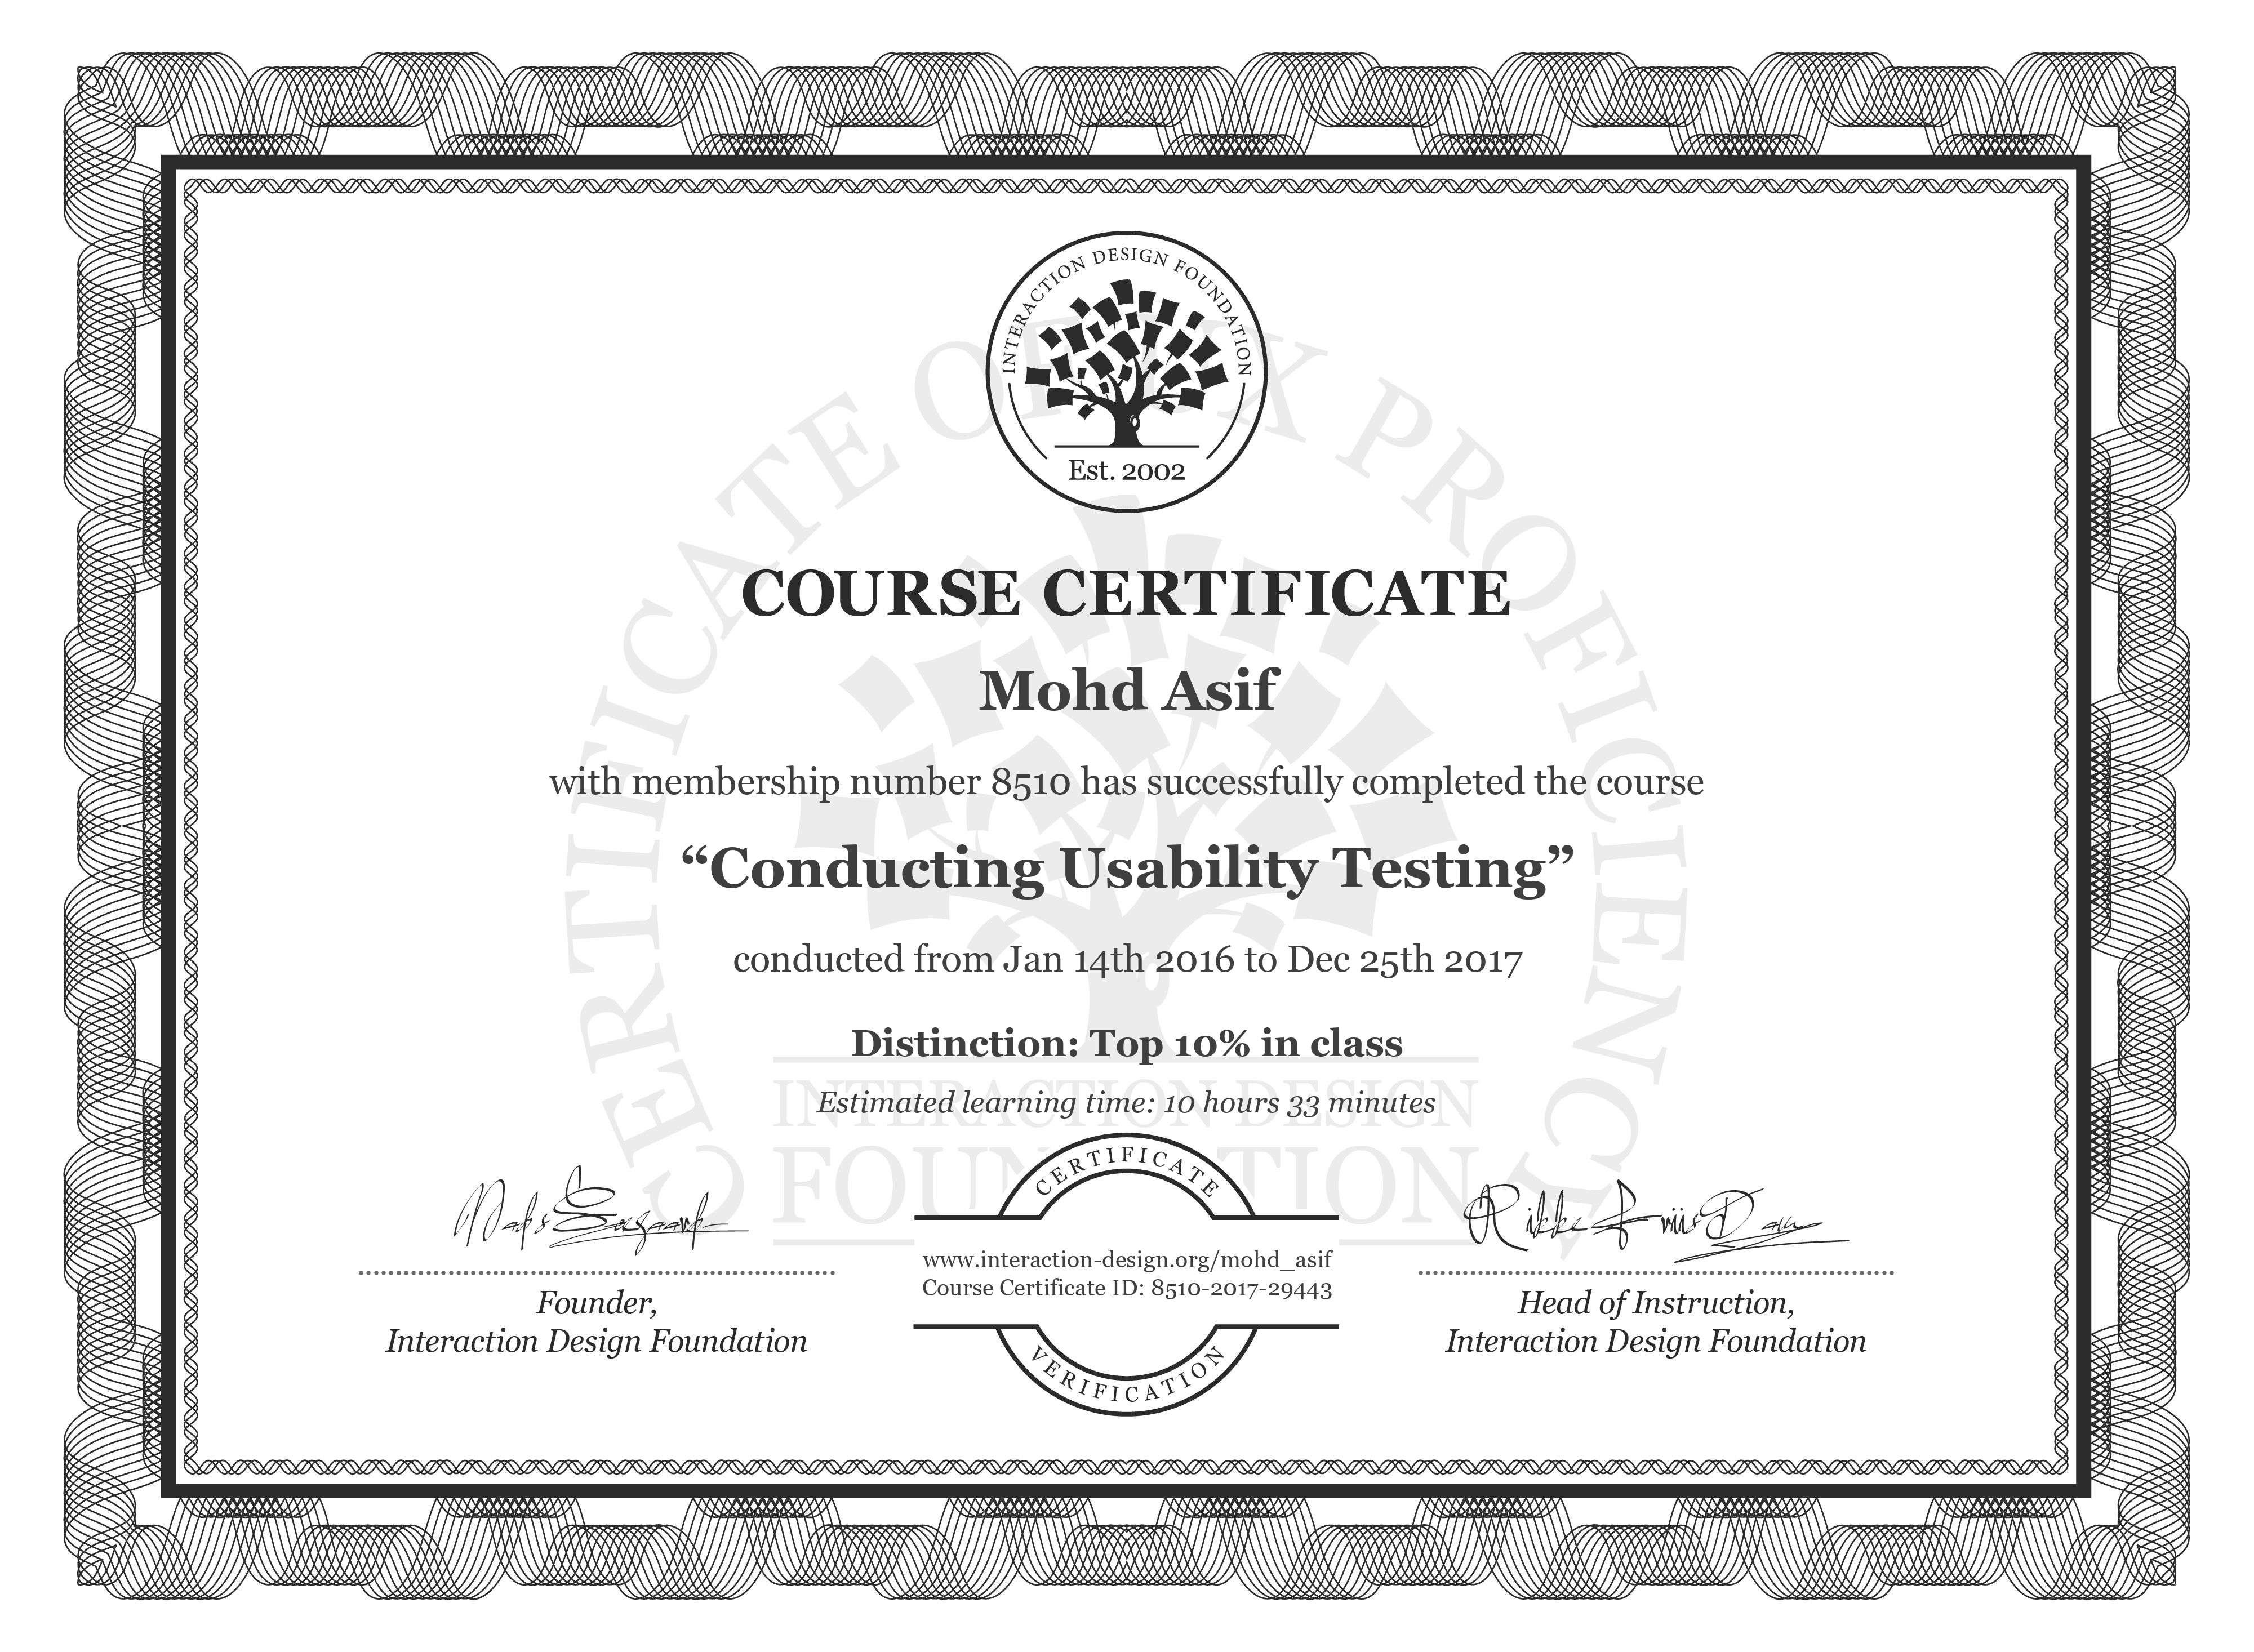 Mohd Asif: Course Certificate - Conducting Usability Testing